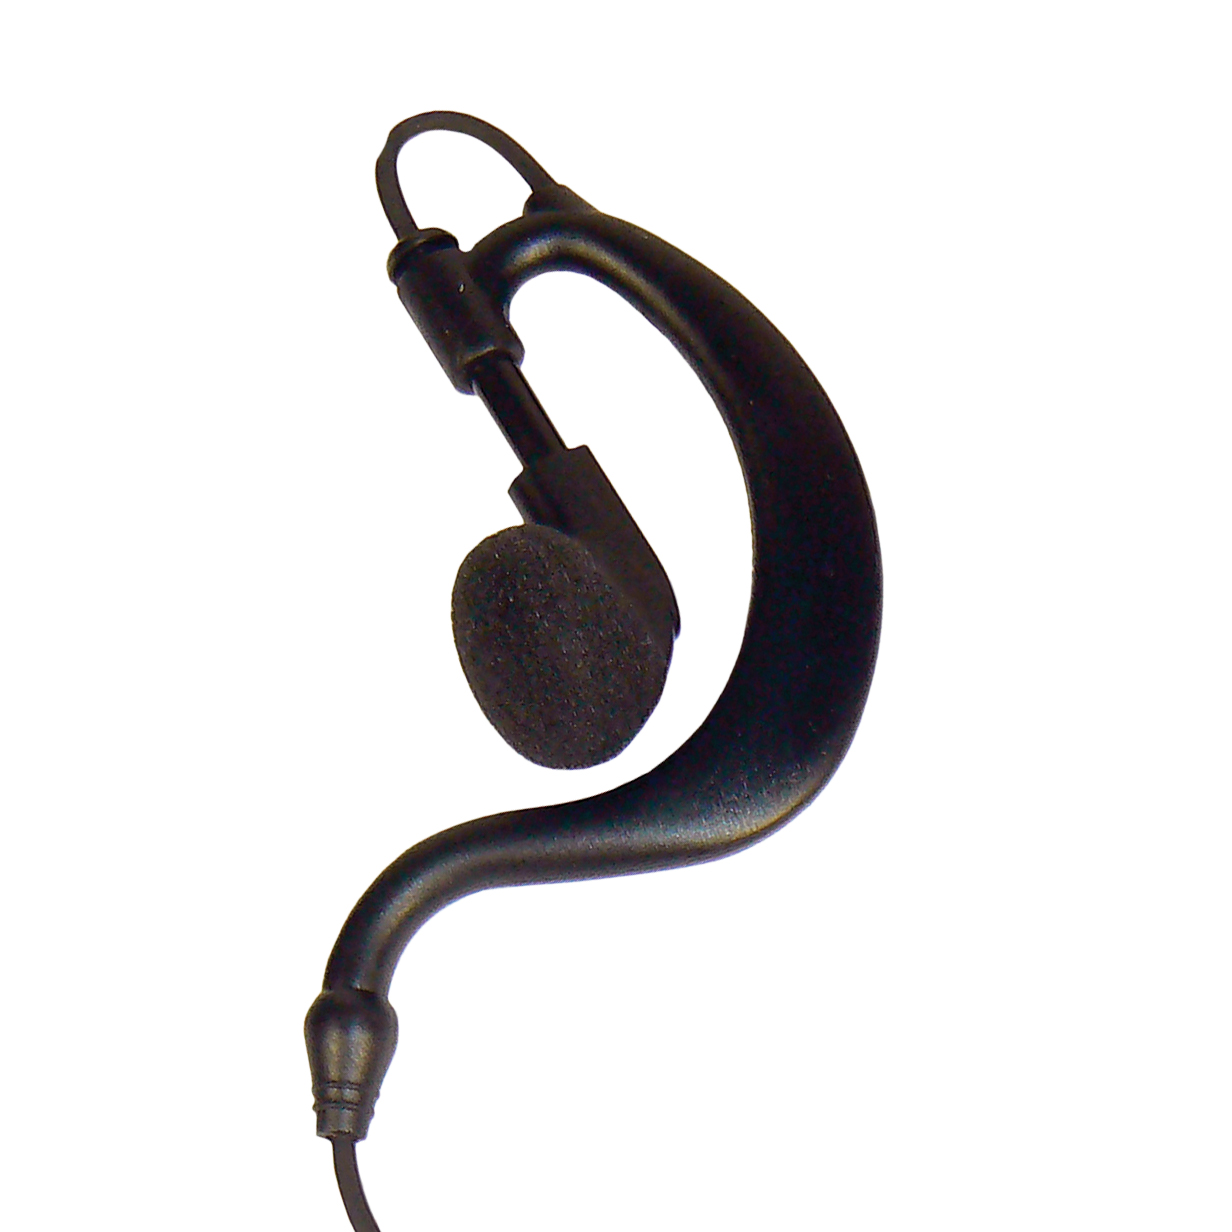 G-Shape earpiece